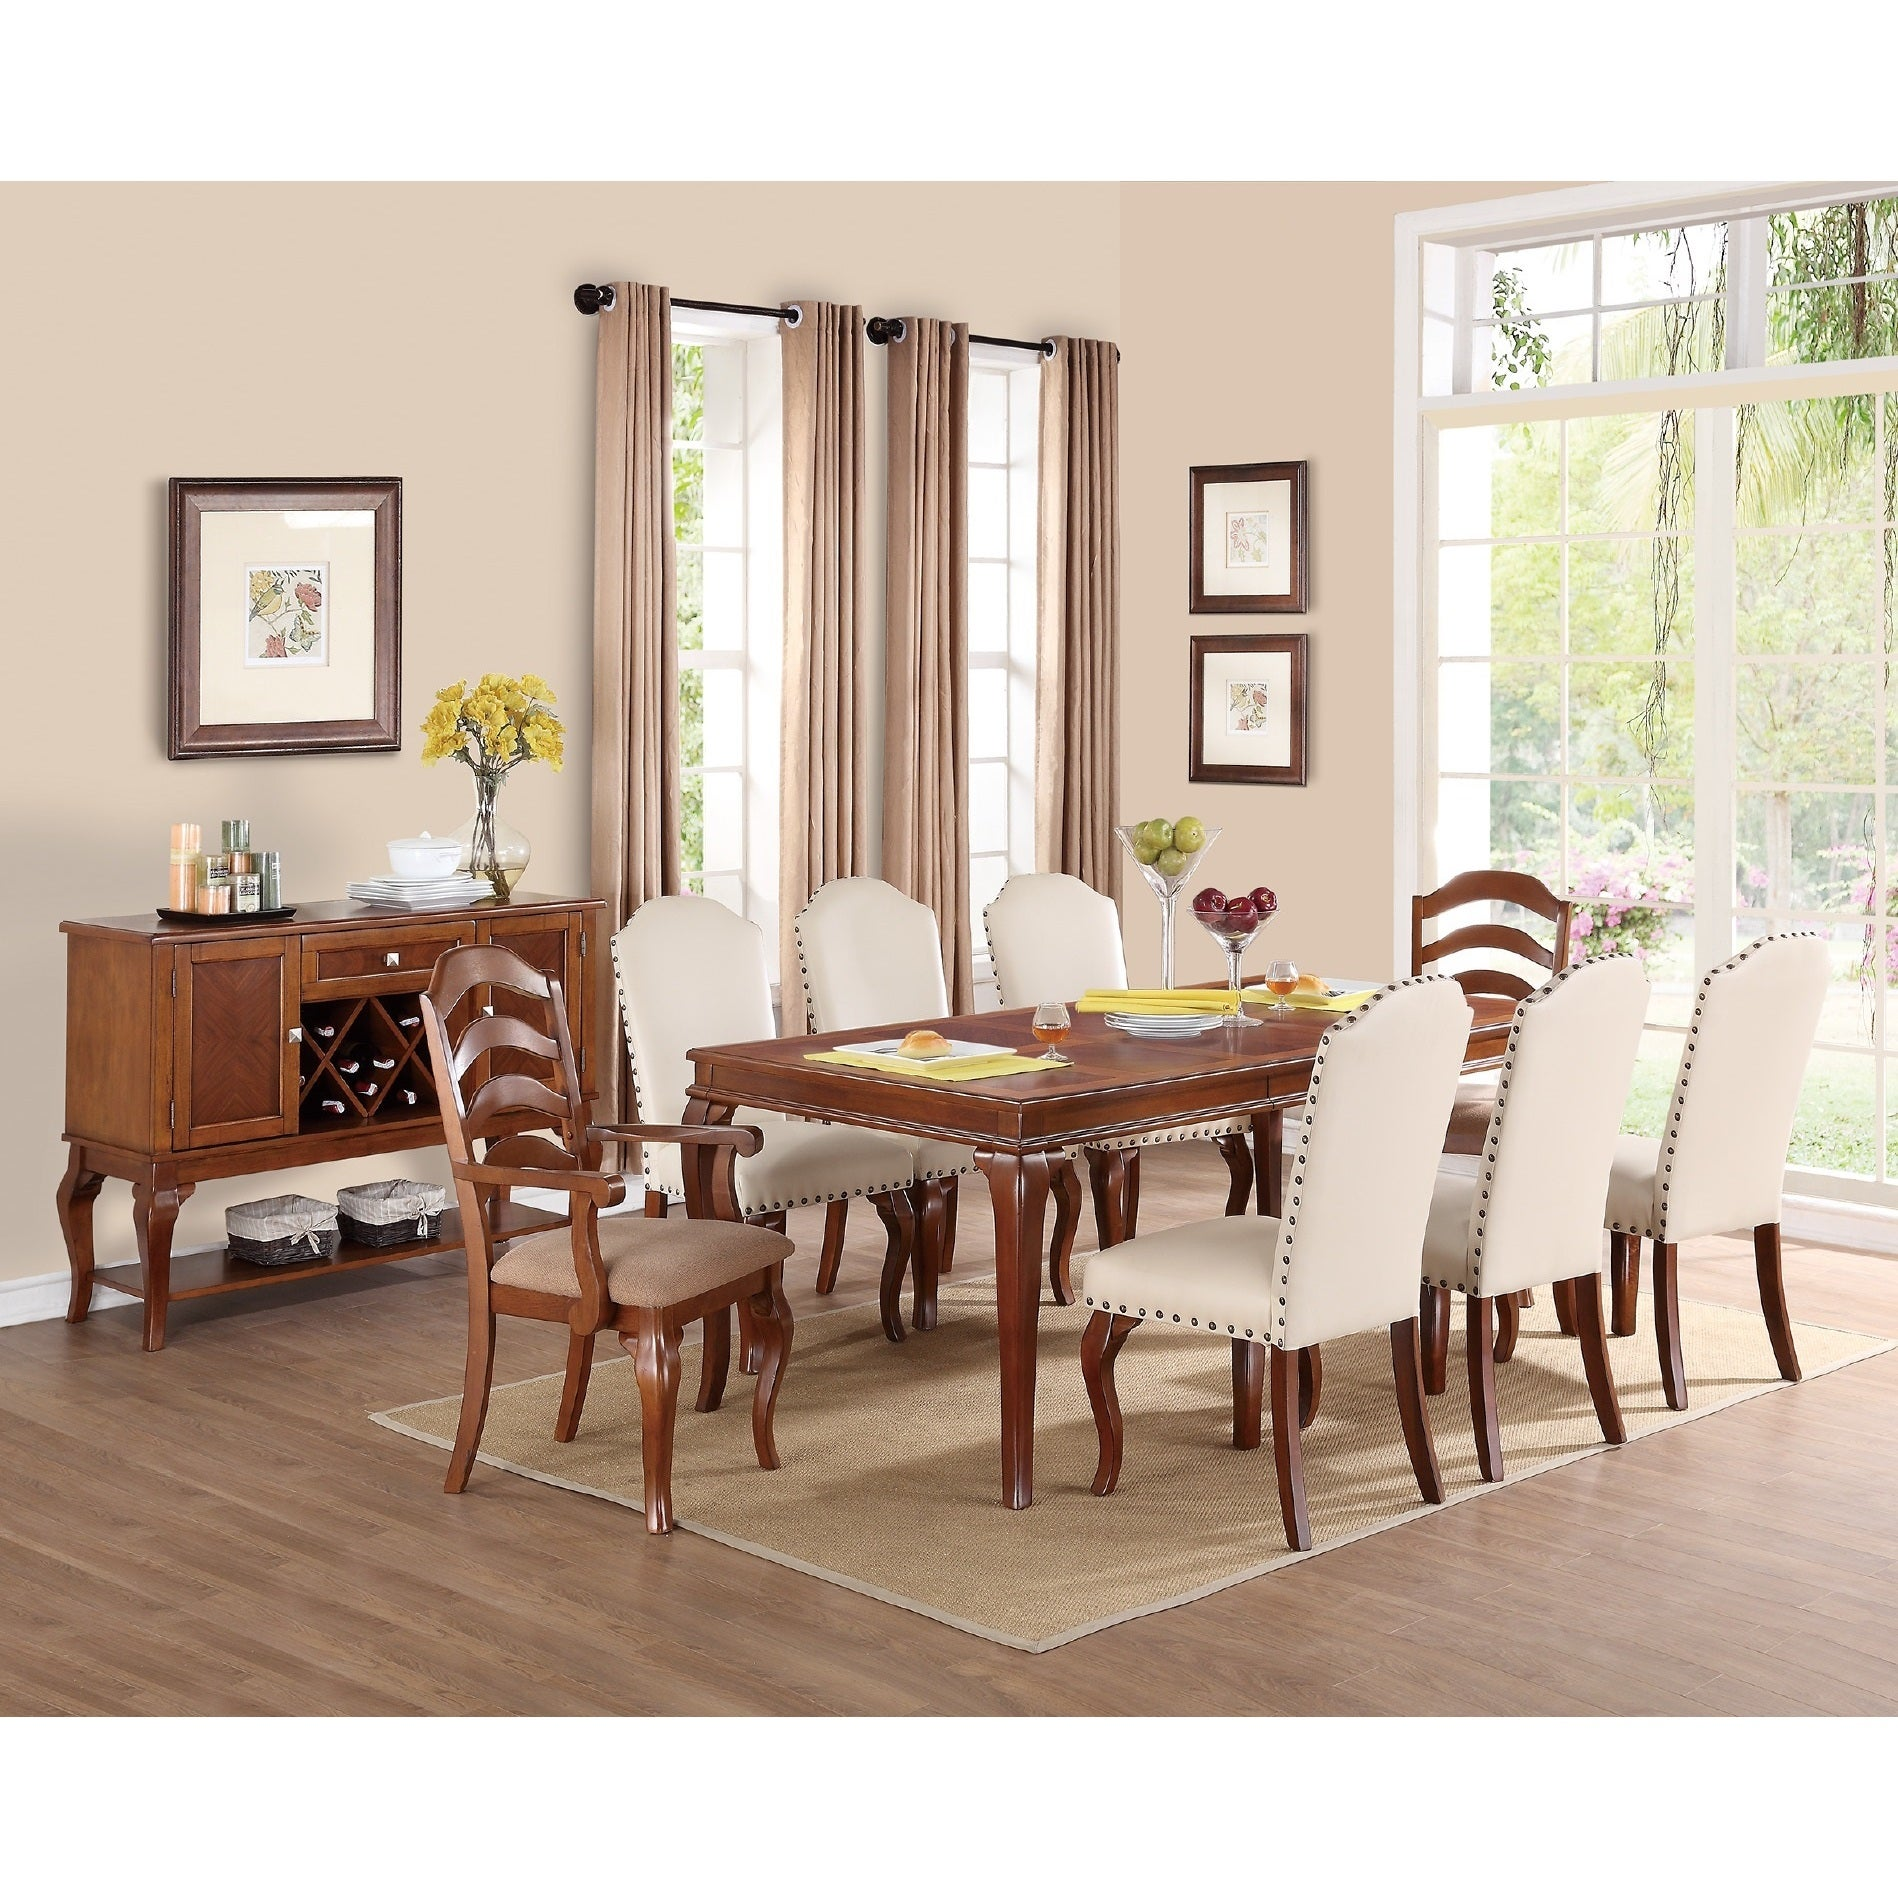 Diana 9 Piece Cherry Dining Table Set